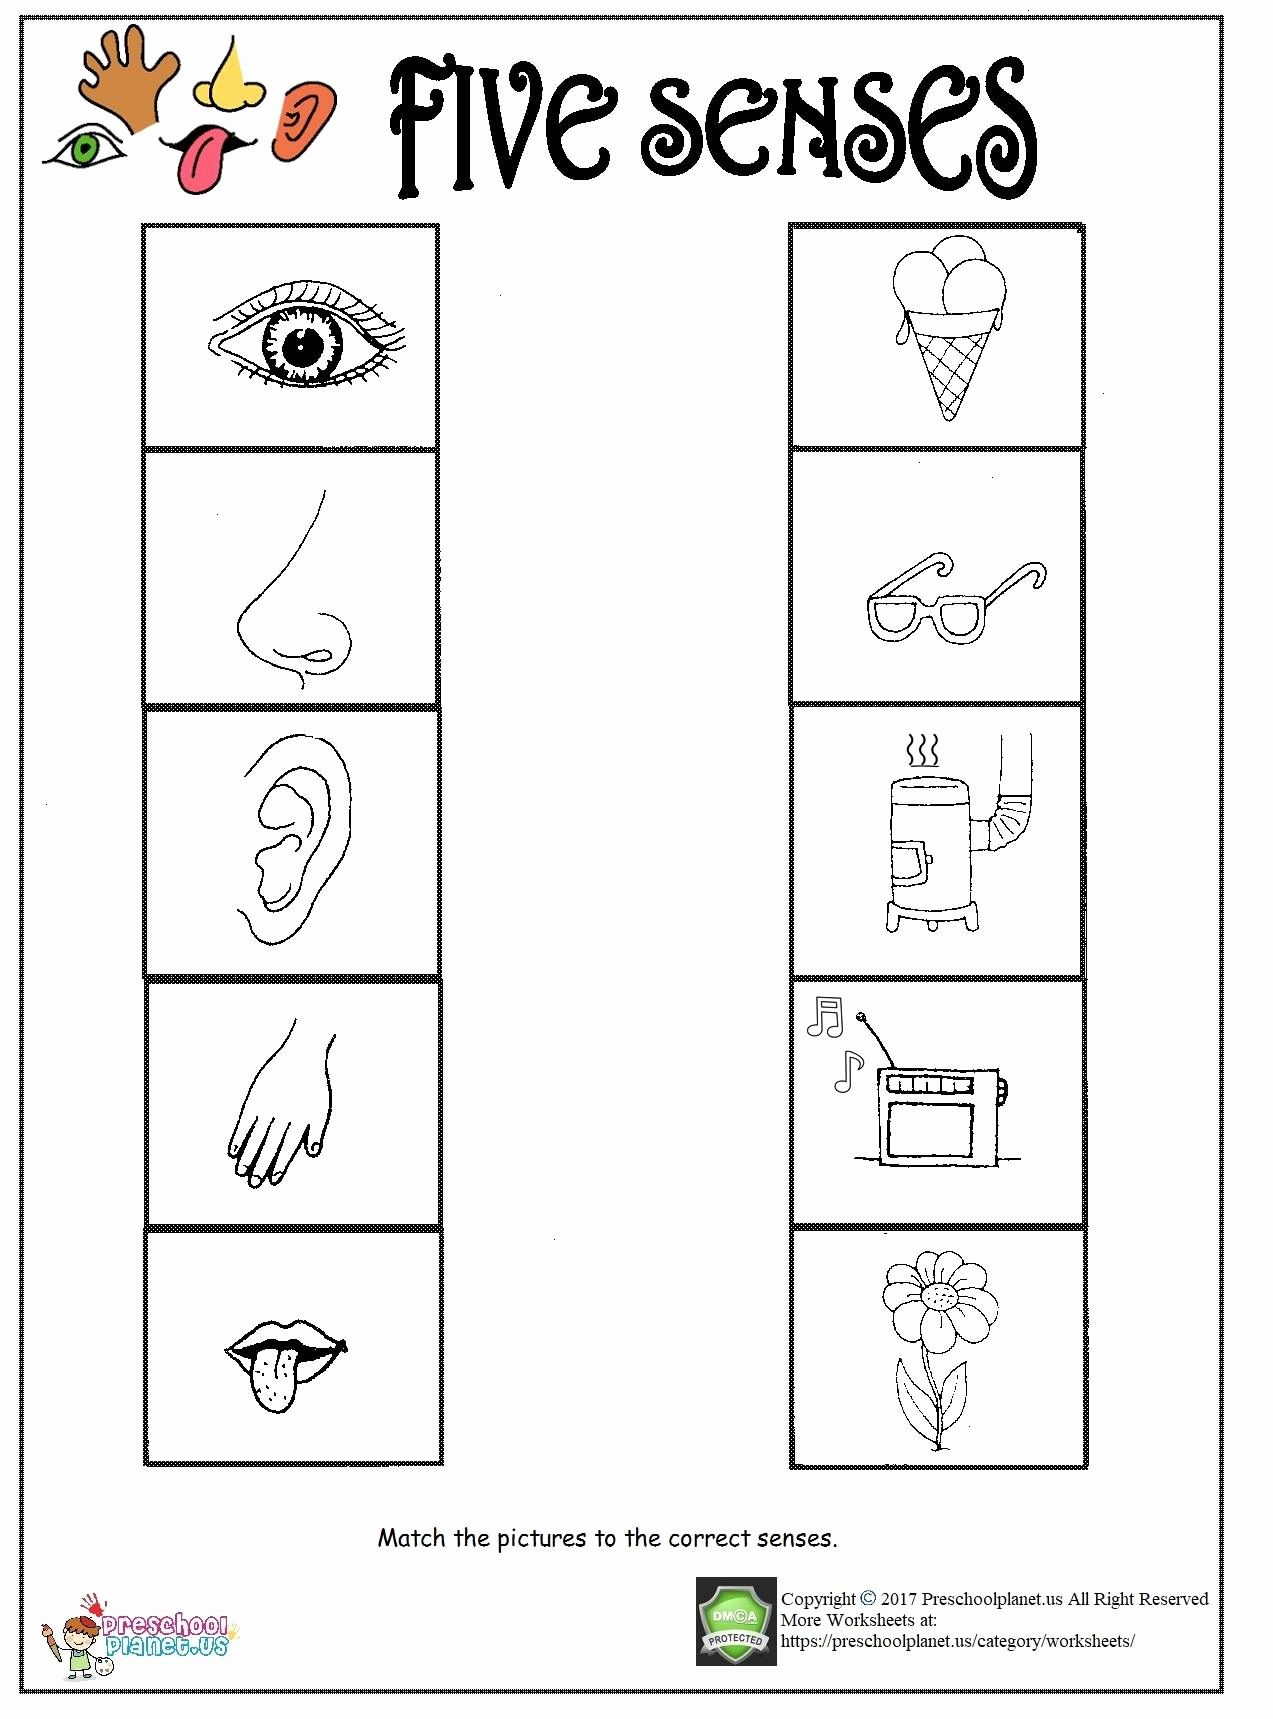 Worksheet For Kindergarten Senses In